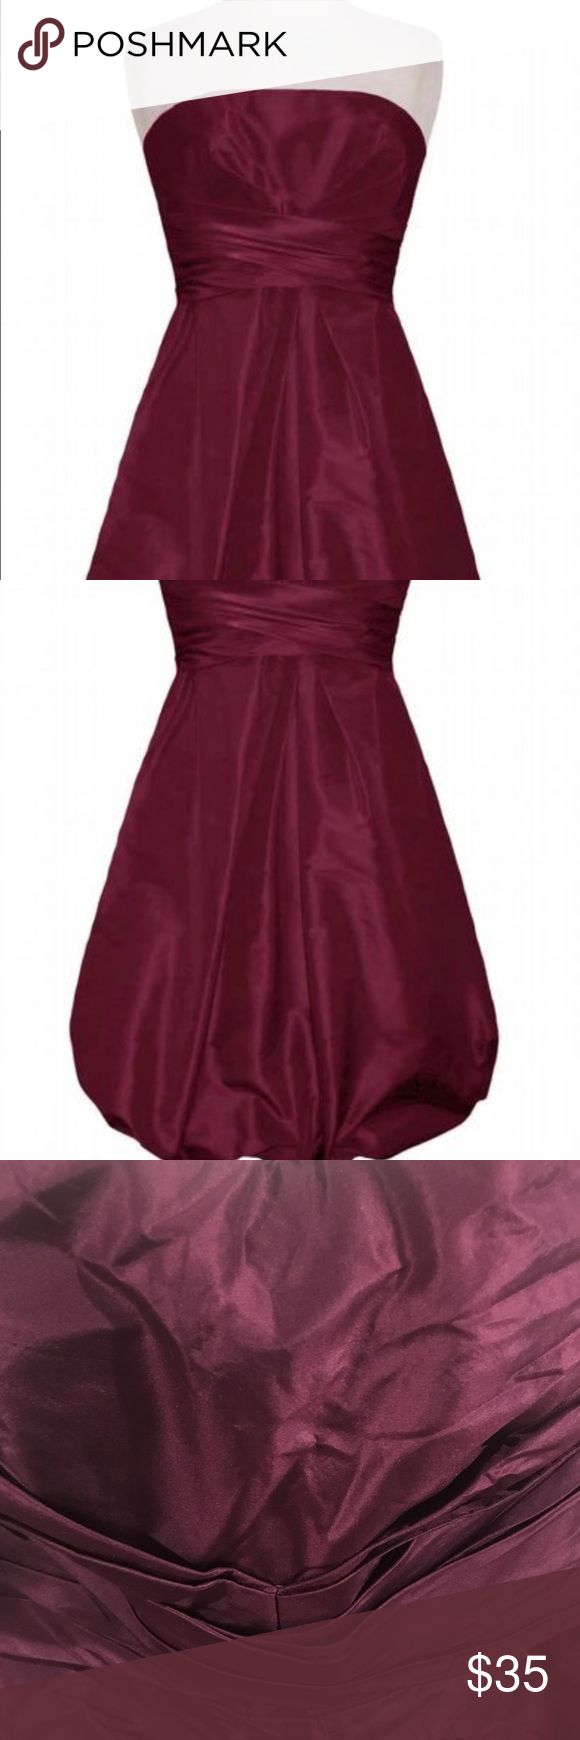 Donna Ricco New York strapless plum colored dress. Donna Ricco New York strapless plum colored dress.  Bubble dress. Very flattering!  The dress is more purple then the picture shows.  It's a Plum color. Donna Ricco Dresses Strapless